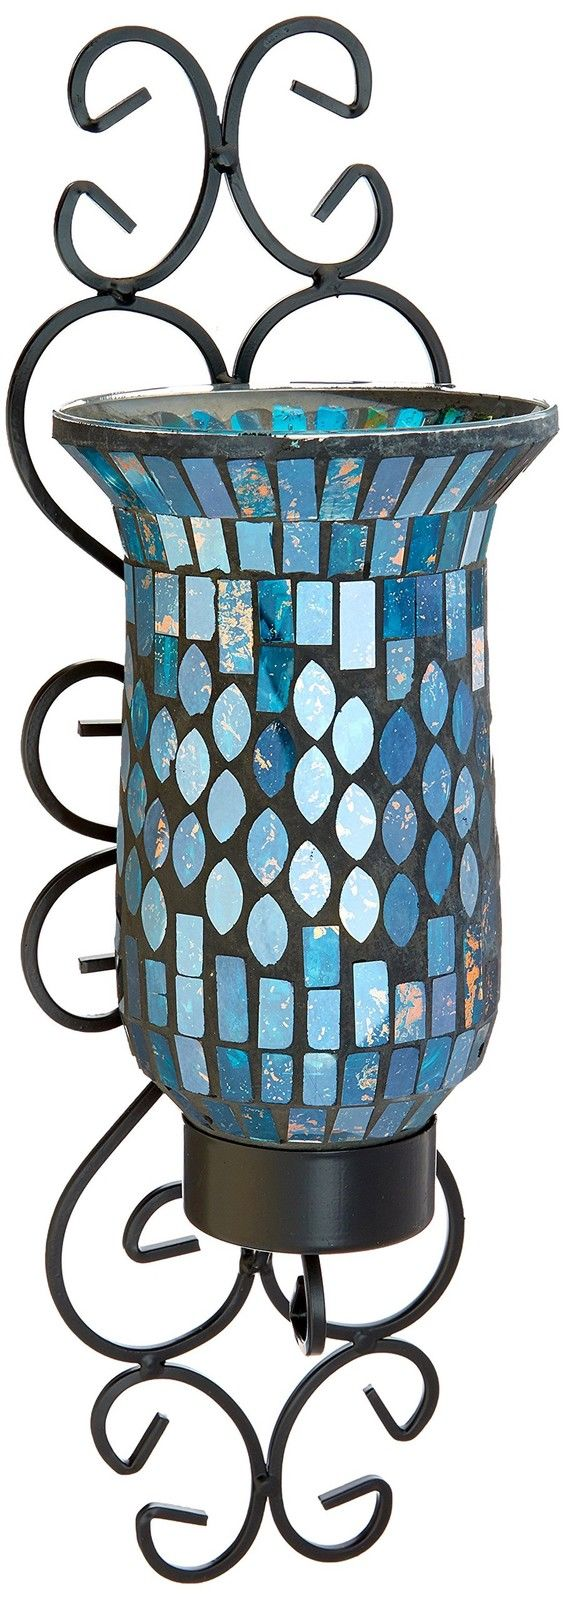 American Atelier Mosaic Glass and Metal Wall Sconce by American Atelier